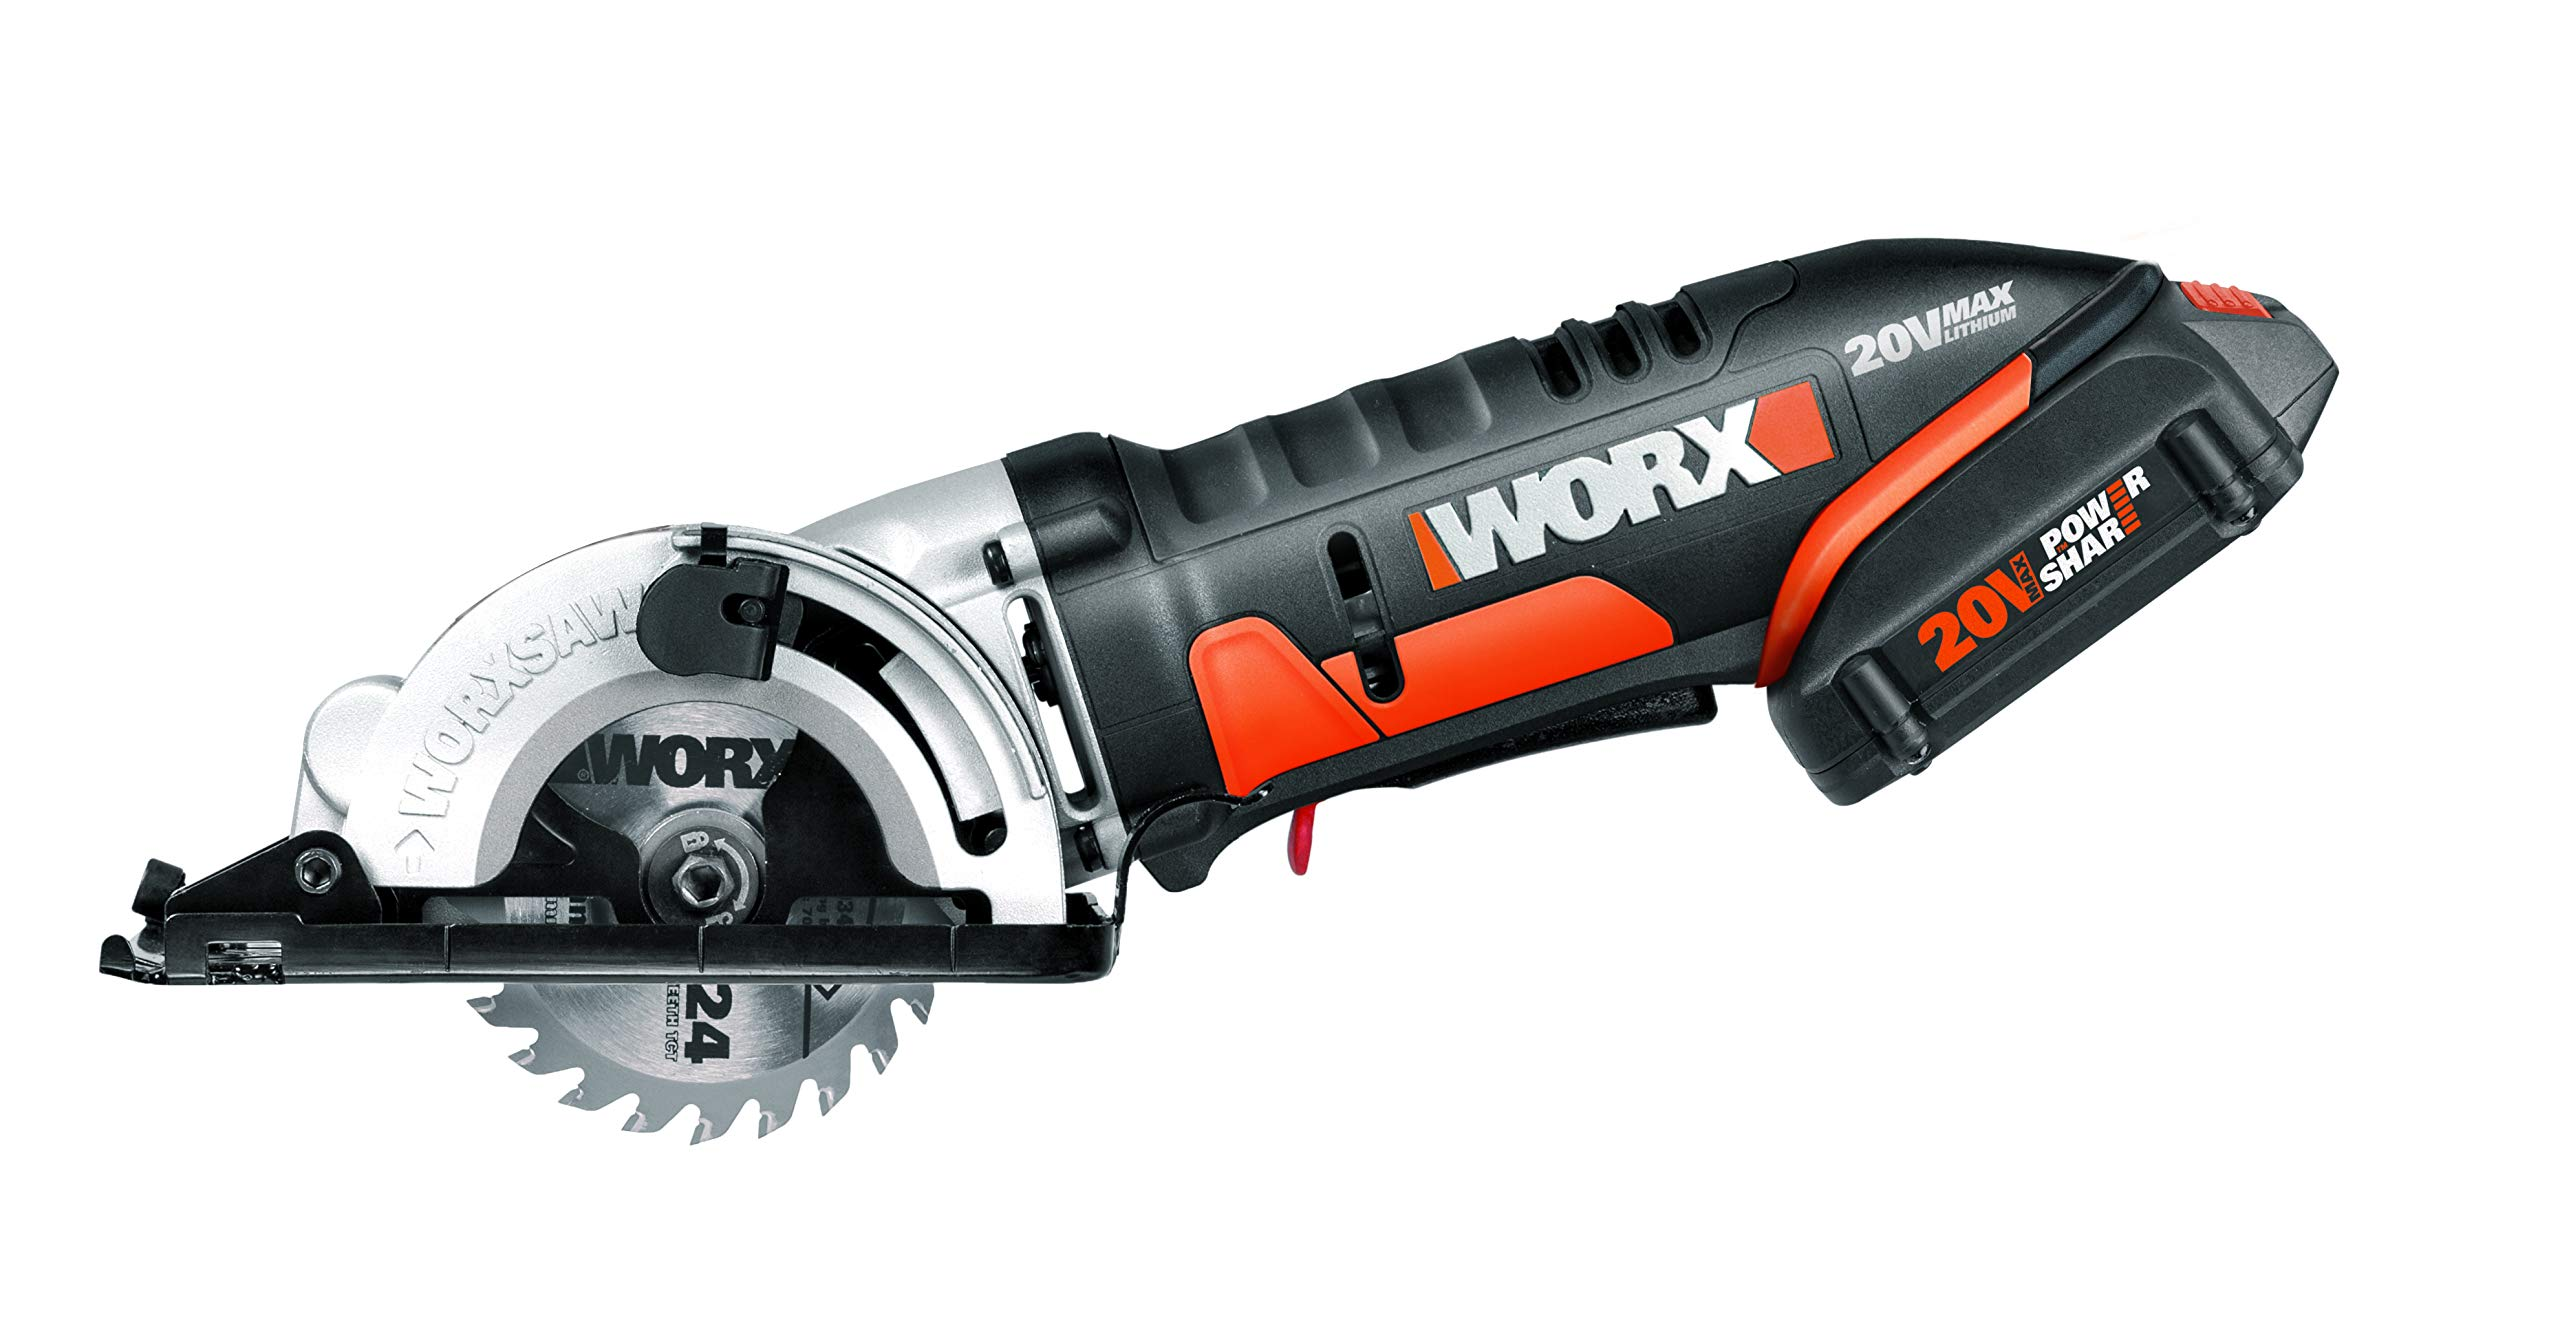 WORX WX523L 20V 3-3/8'' Max Lithium-Ion Plunge Circular Saw